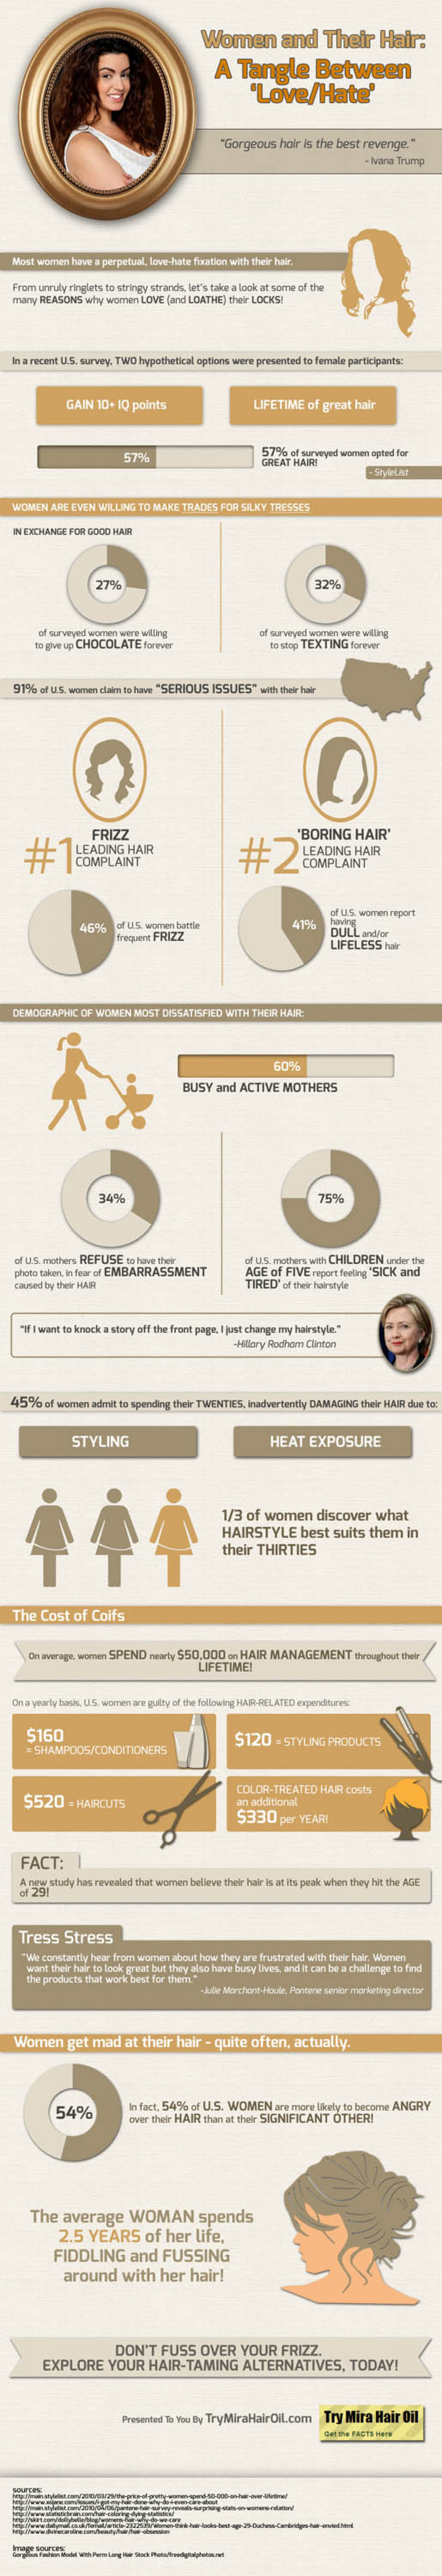 Women and Their Hair: A Tangle Between Love-Hate Infographic